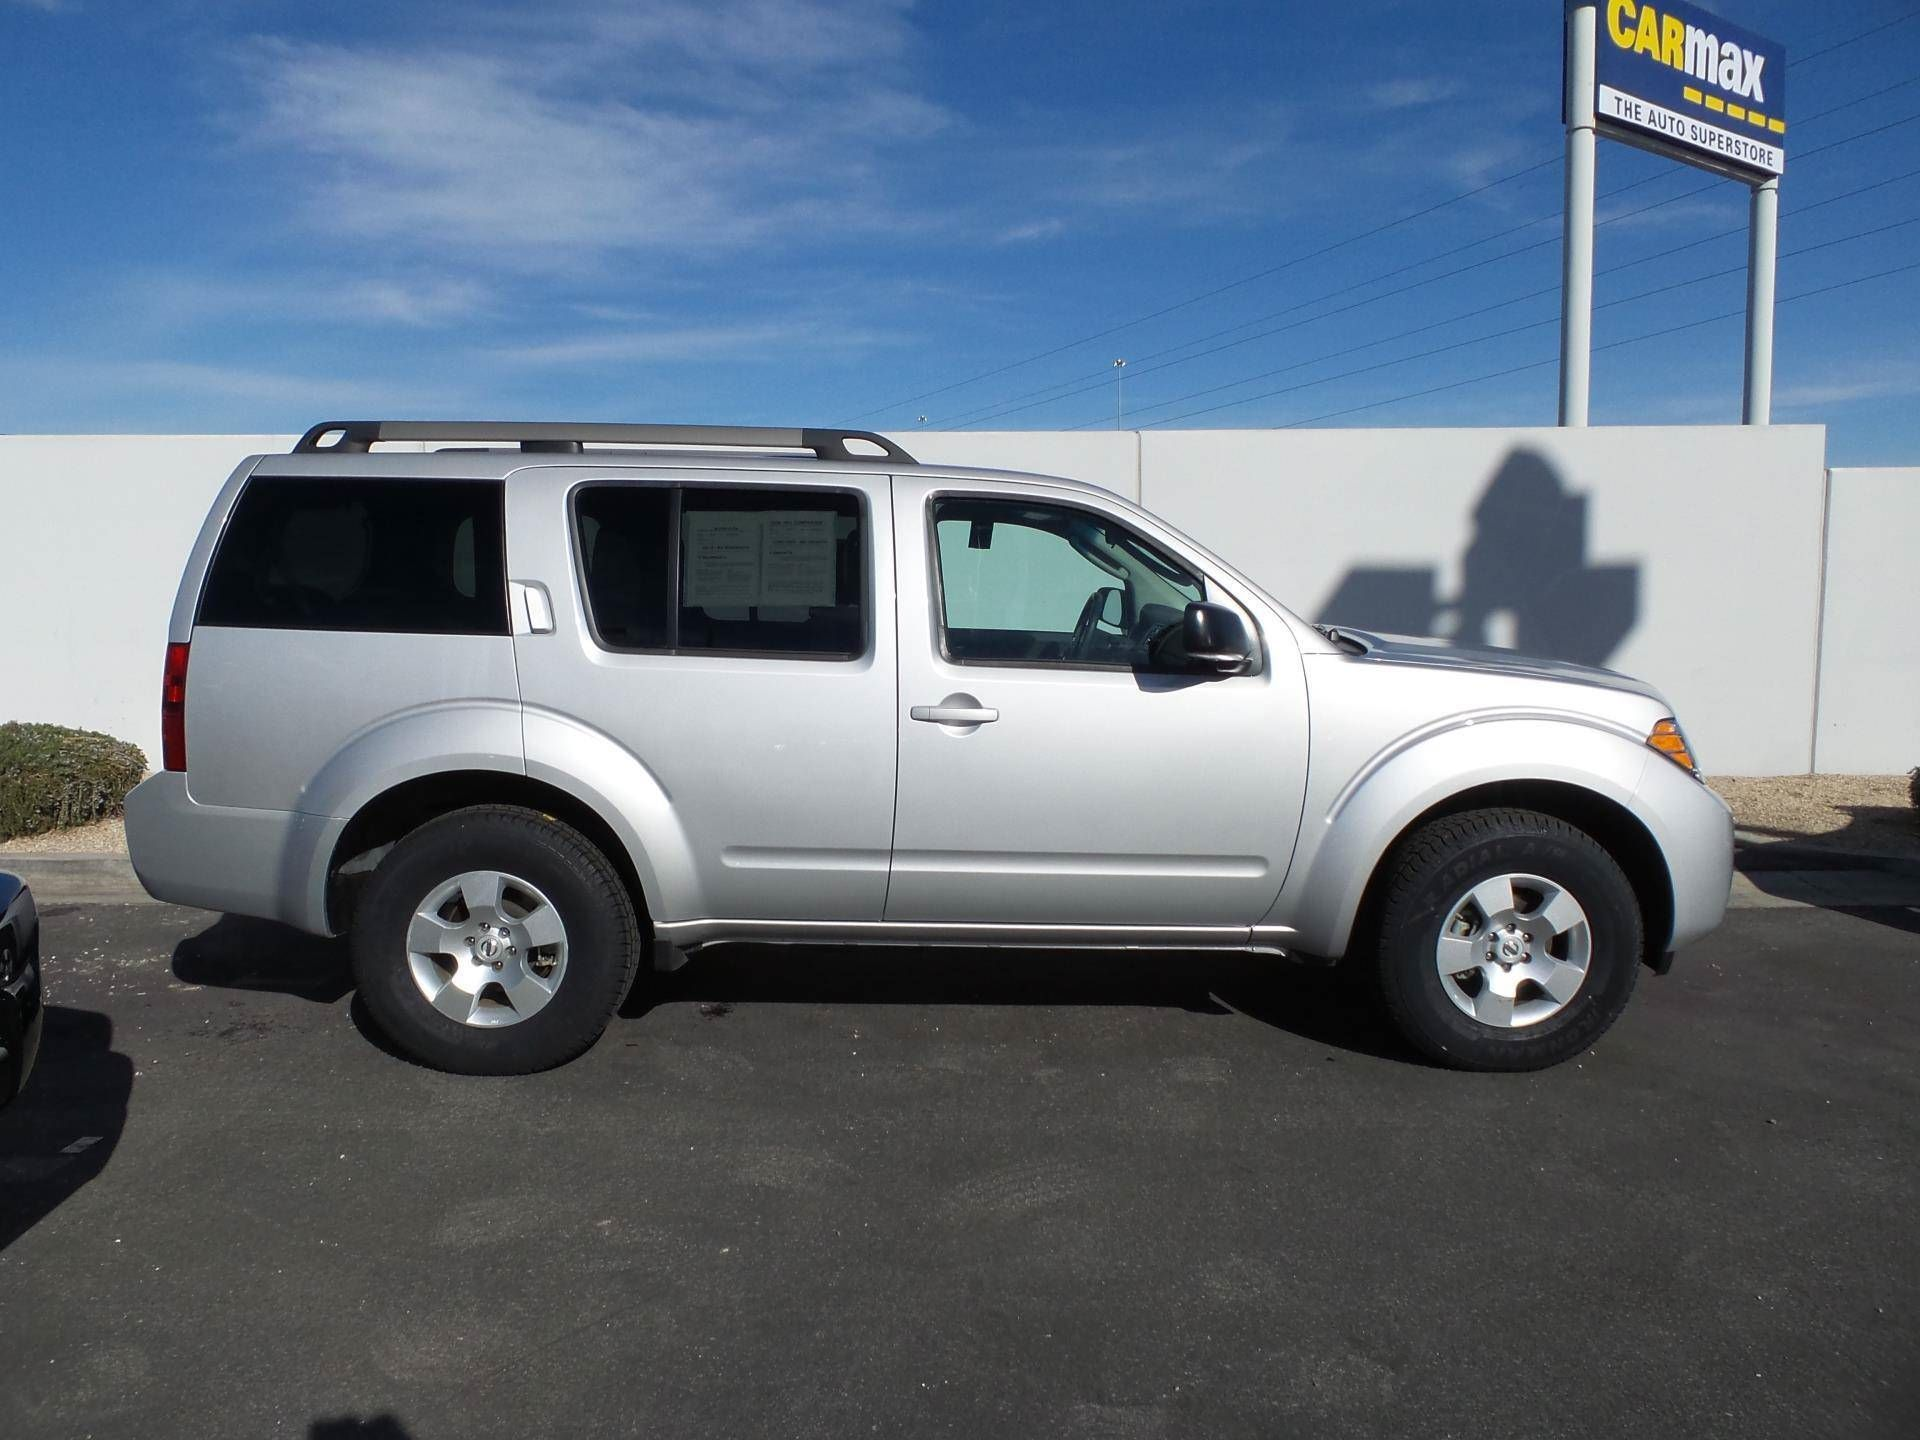 2012 nissan pathfinder s in las vegas nv 12885812 at carmax com